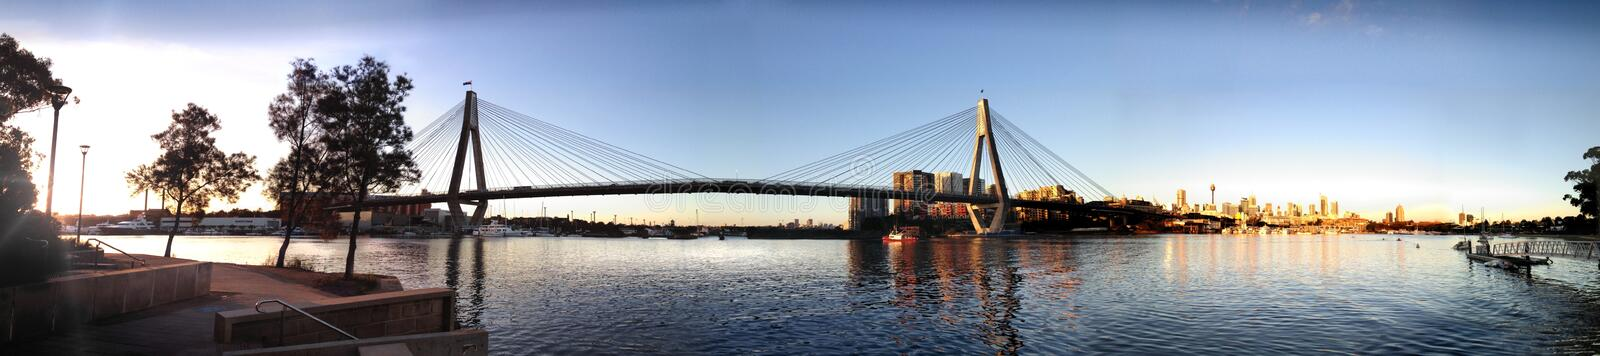 Anzac Bridge Sunset image stock